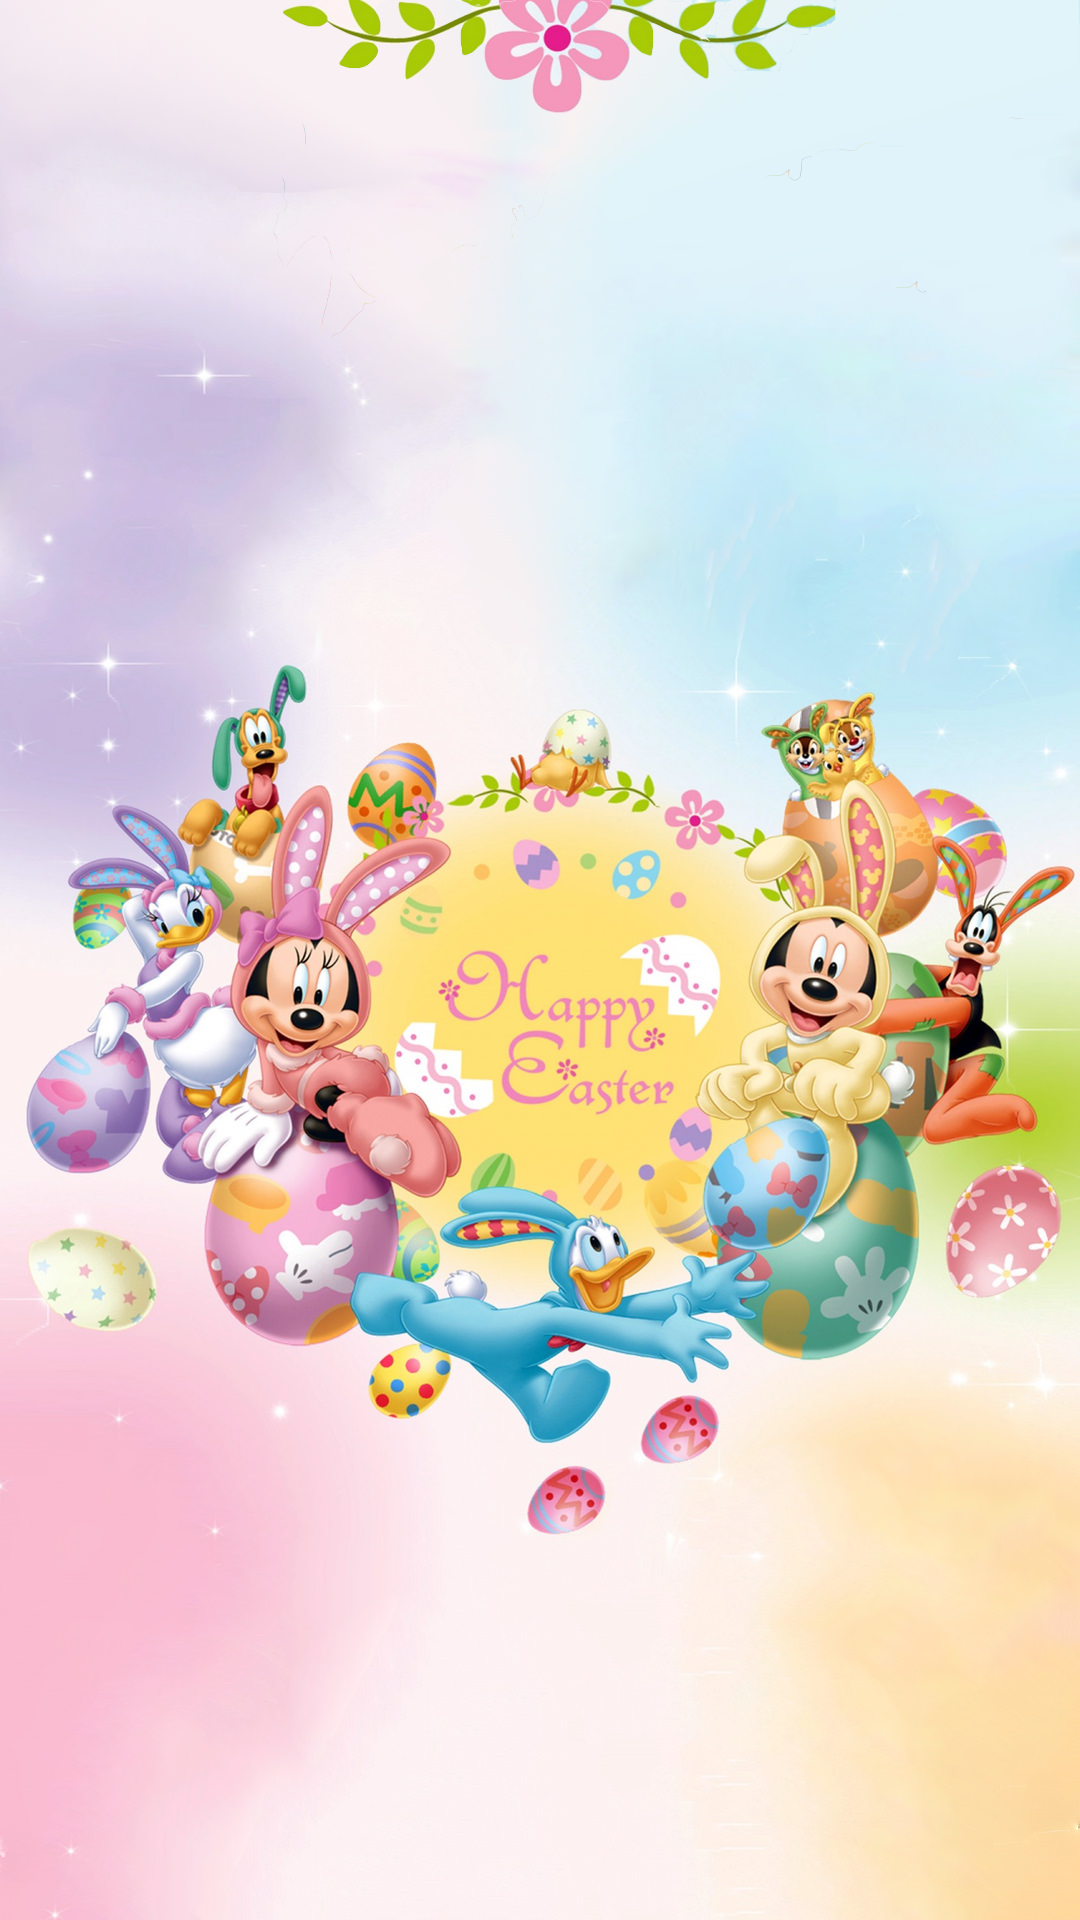 Disney-Easter-iPhone-wallpaper-wpc9004273